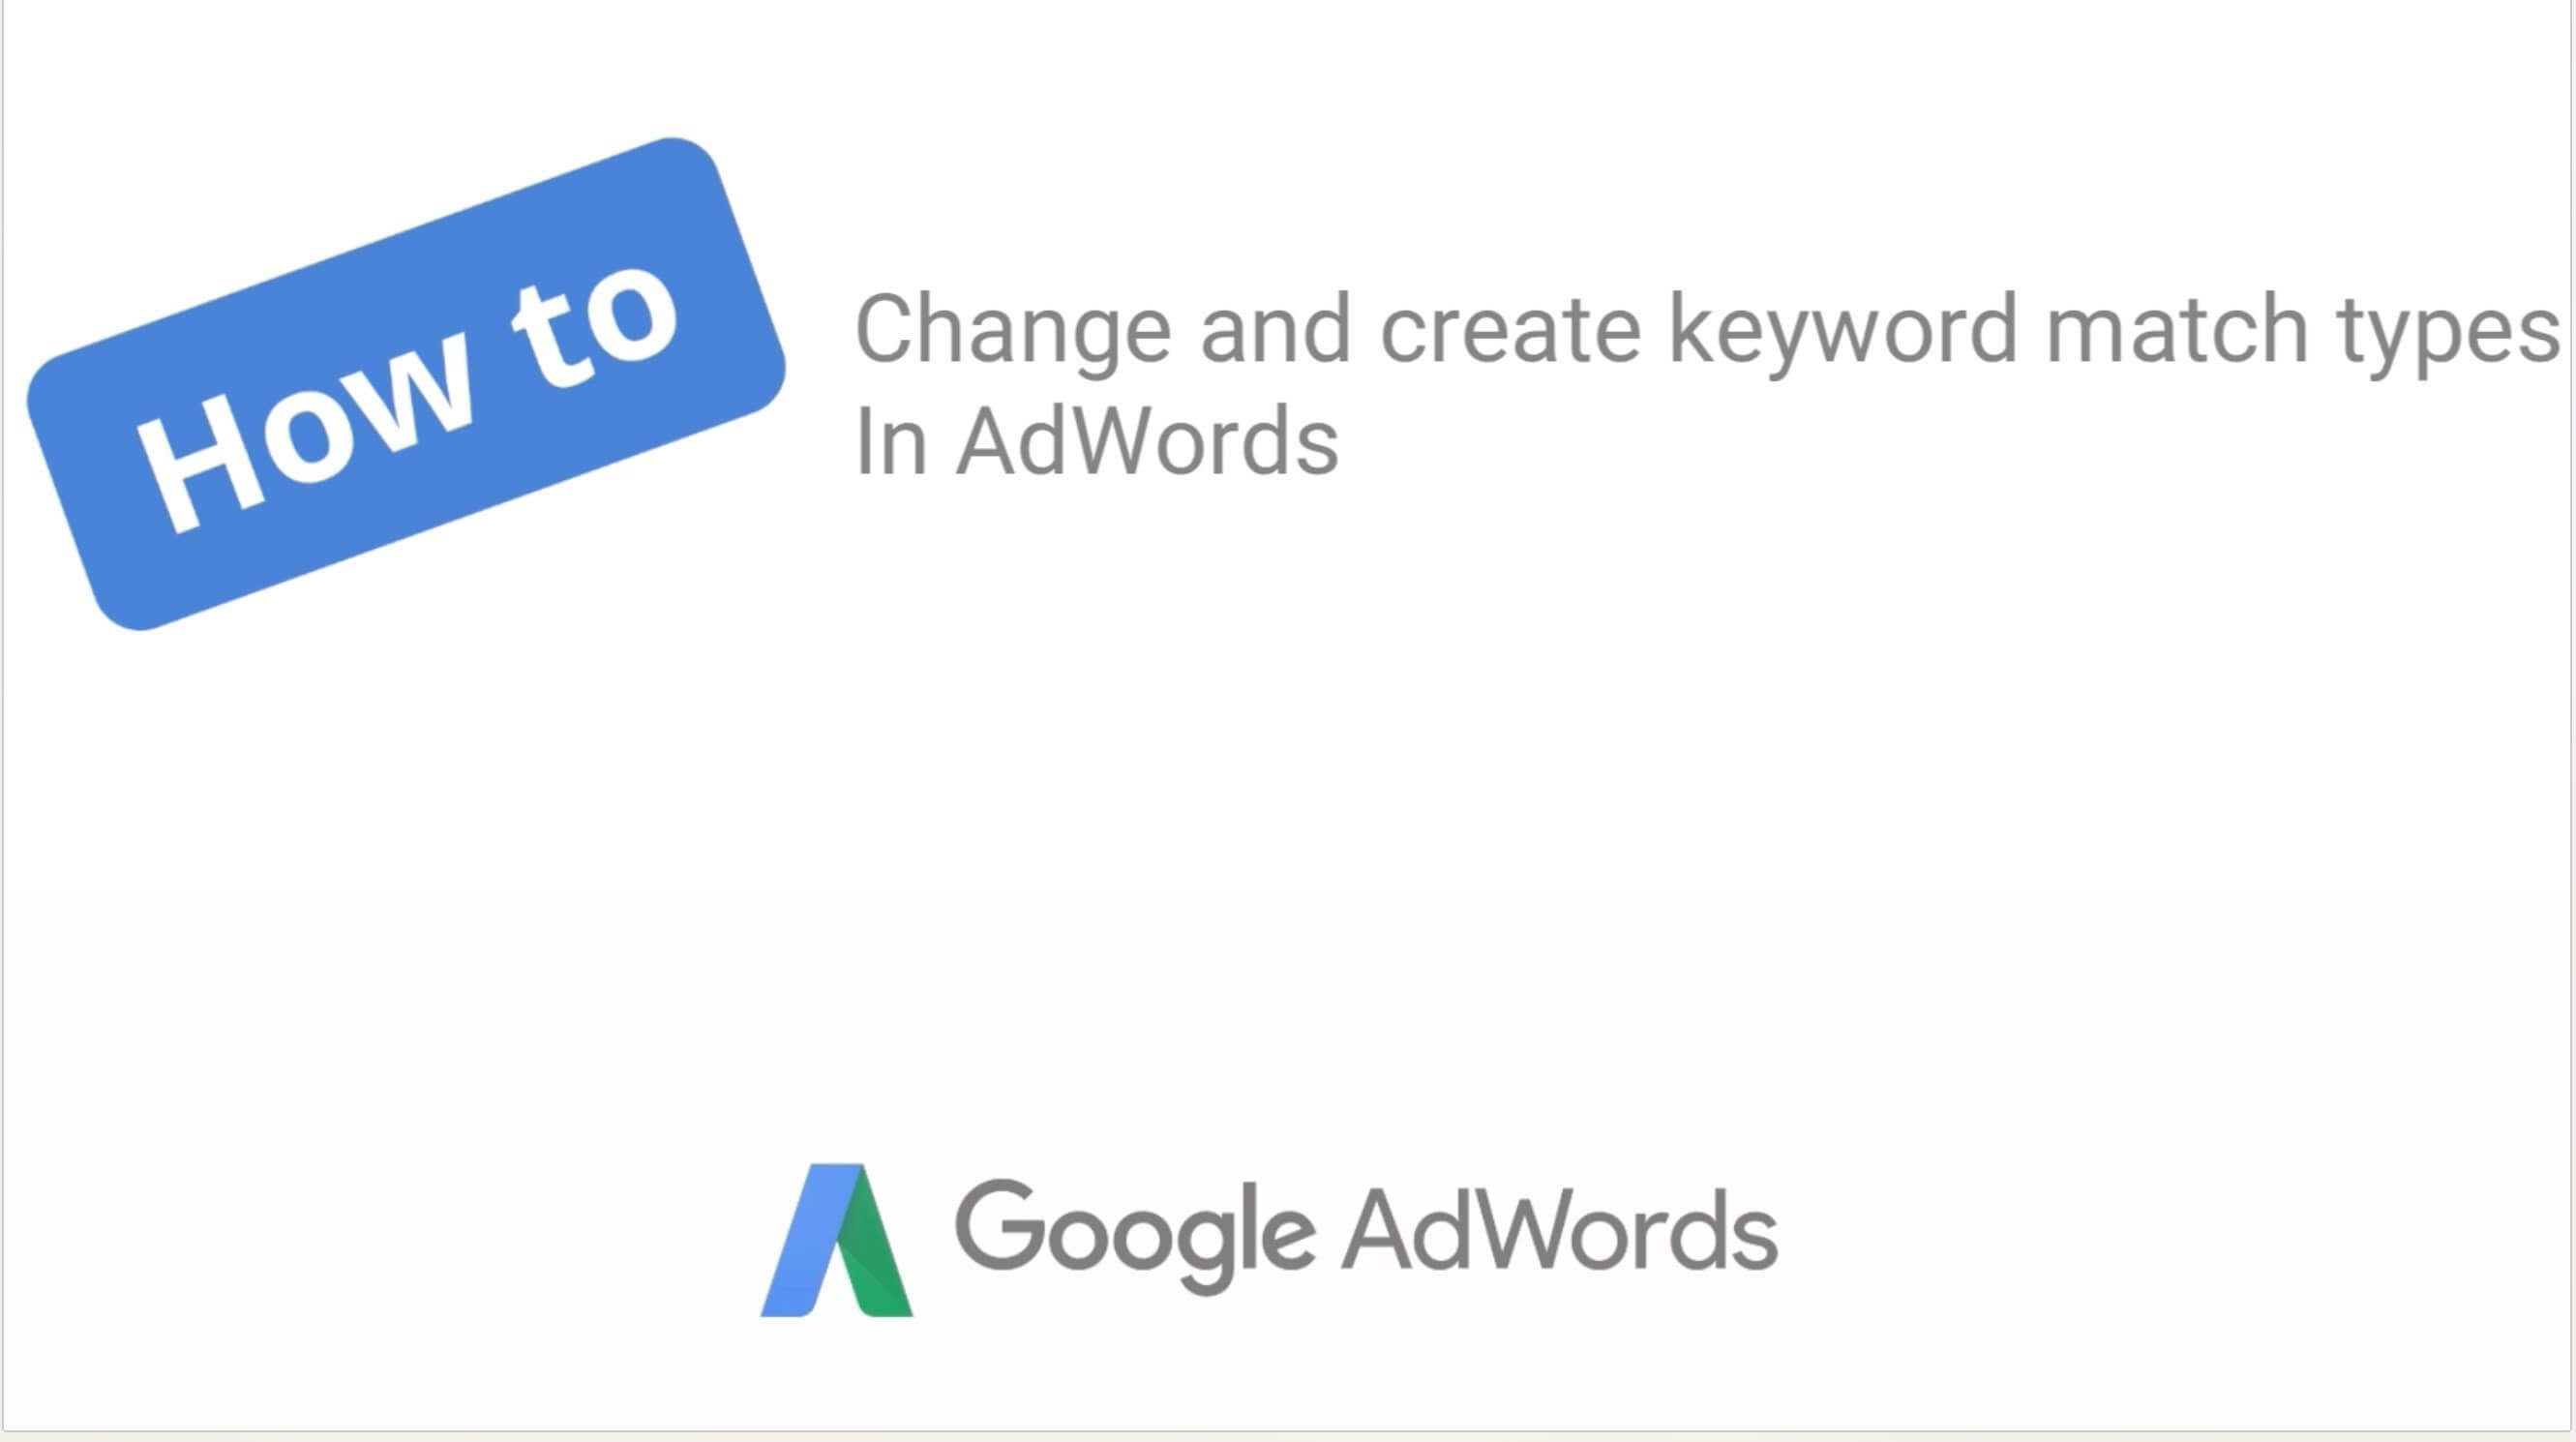 How to change and create keyword match types in AdWords